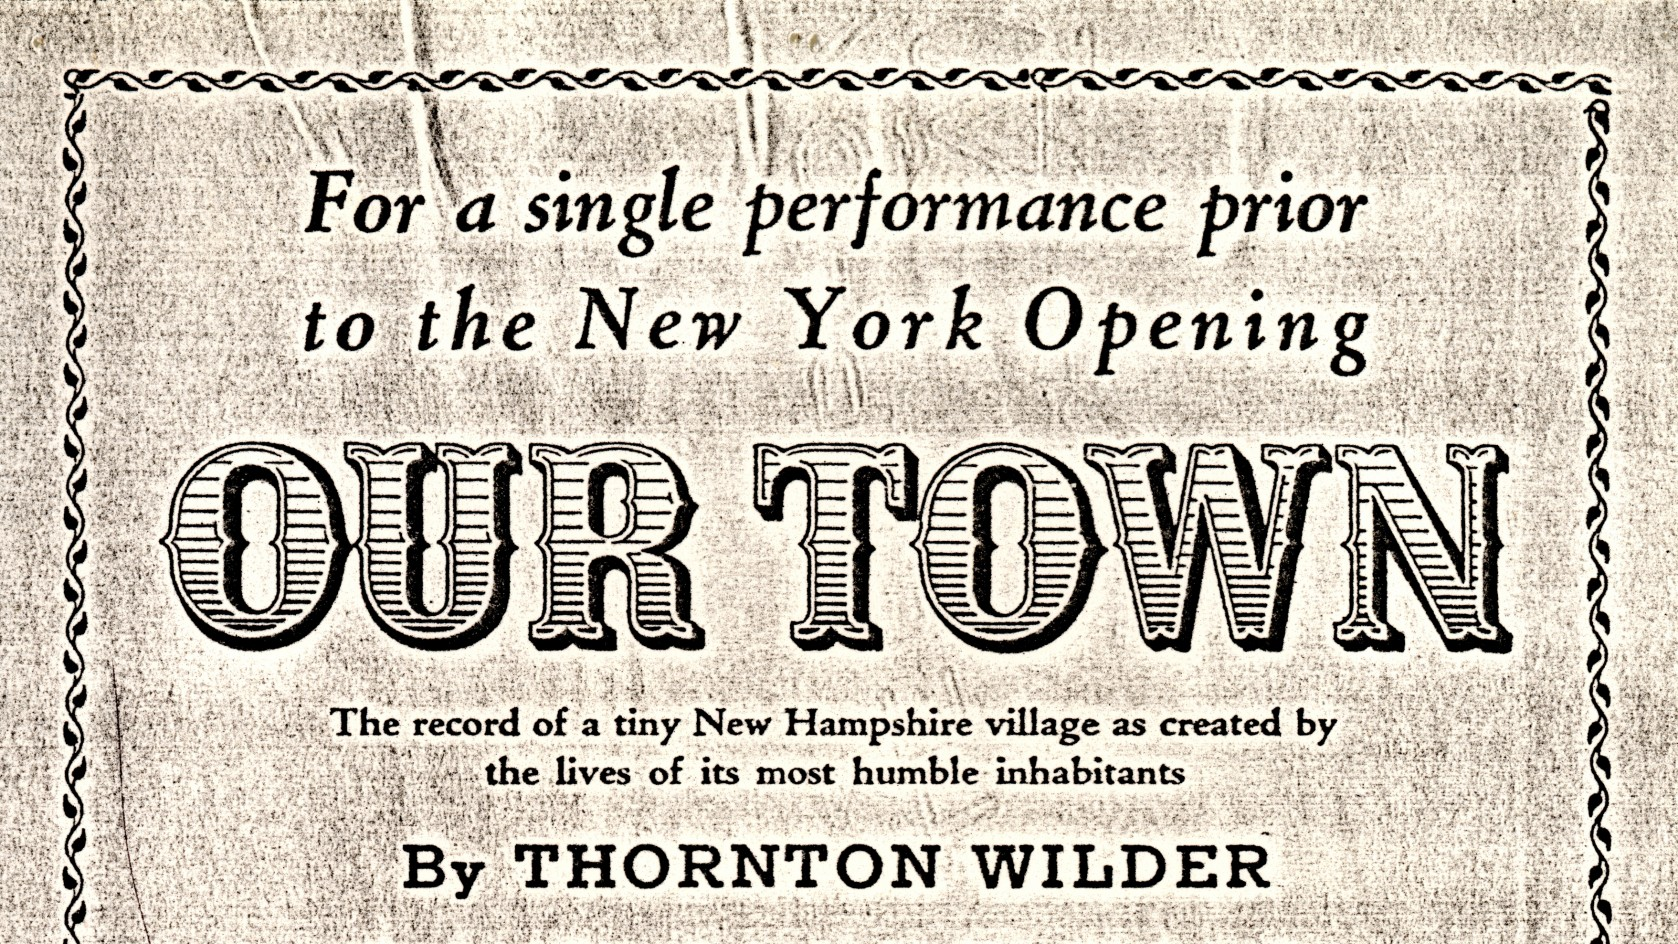 an analysis of our town essay Free essay: our town is a play that takes place near the turn of the century in the small rural town of grover's corners, new hampshire the.